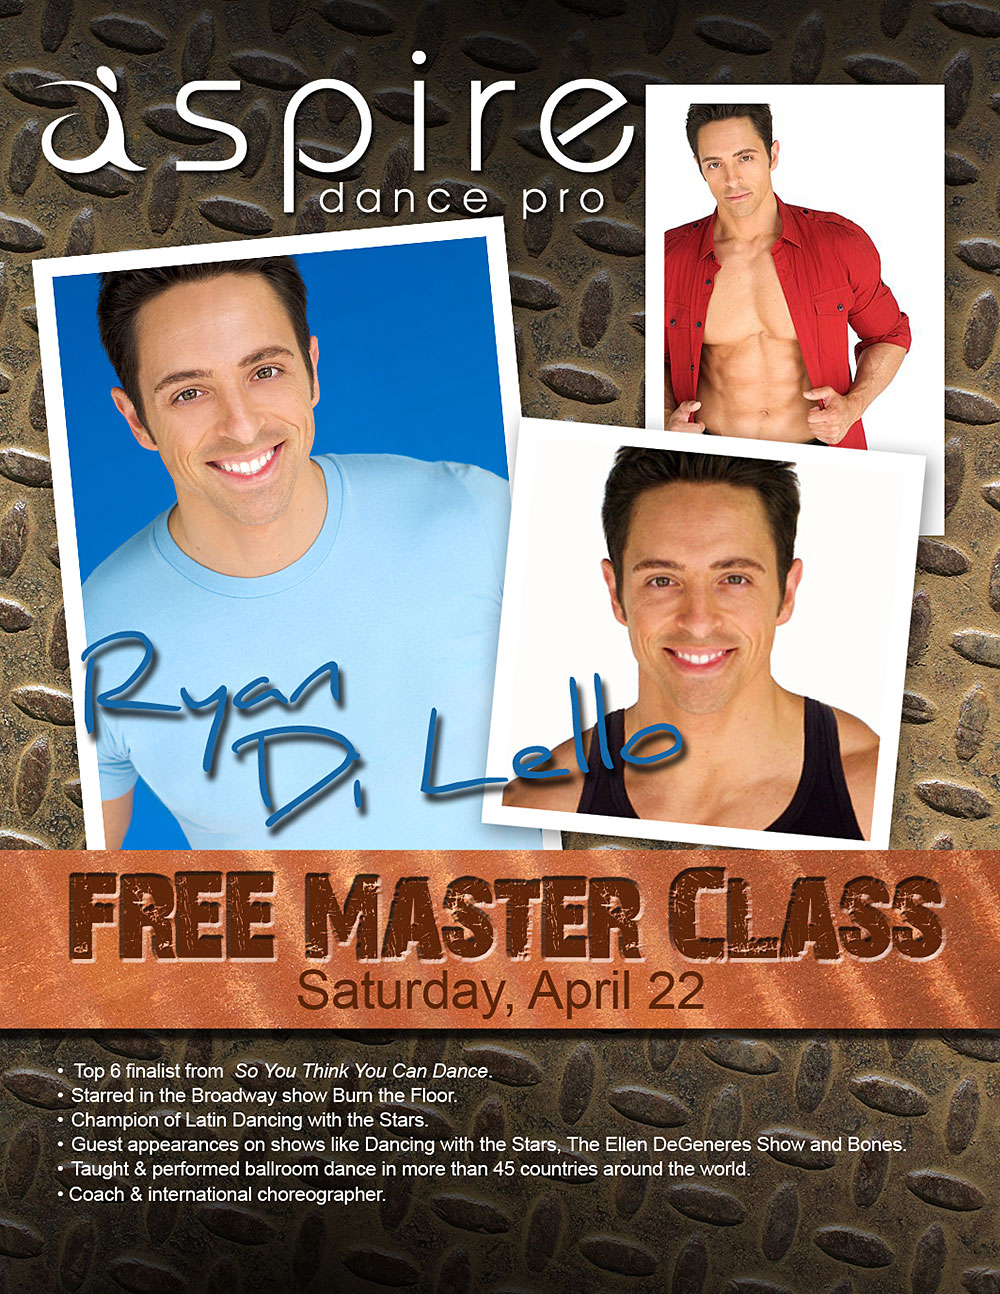 Ryan Di Lello - Aspire Dance Pro Competitions Masterclass Instructor